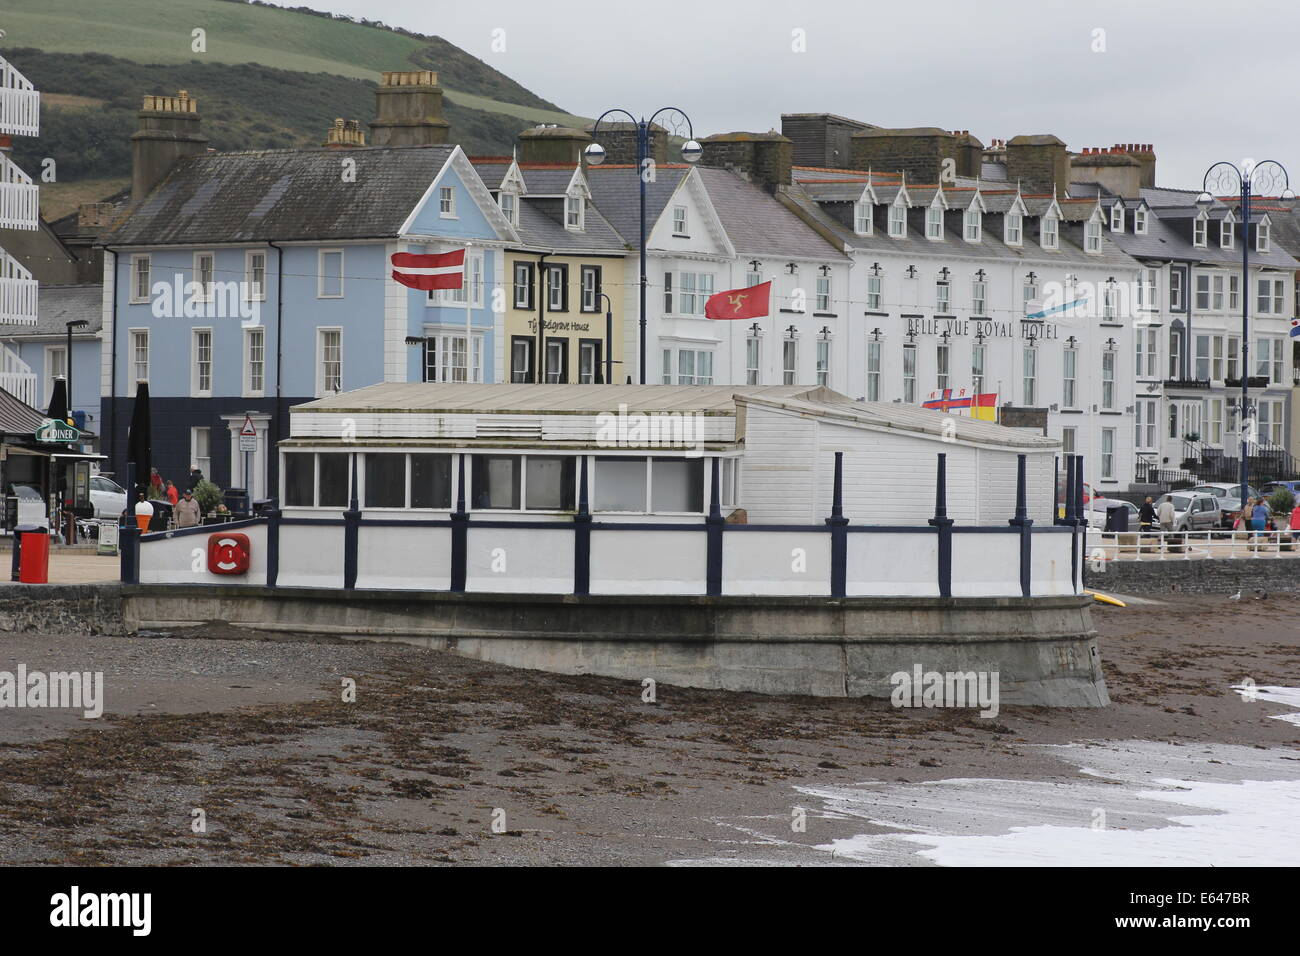 Aberystwyth bandstand on a gusty day - Stock Image